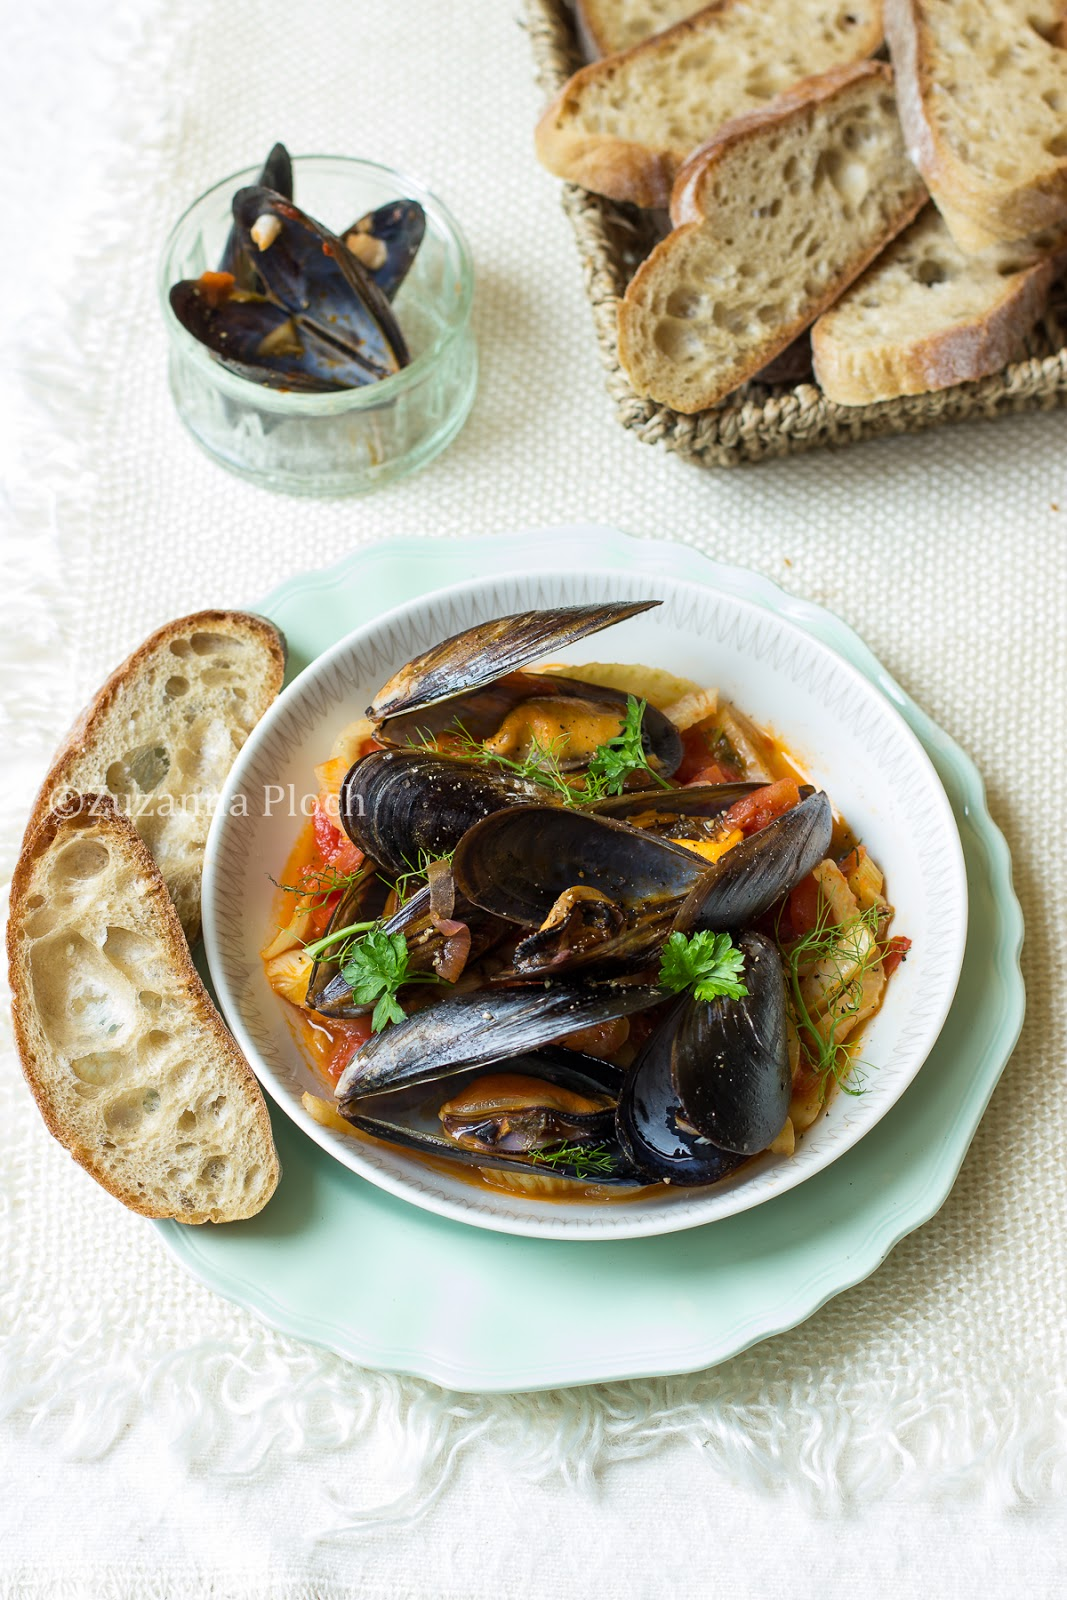 Mussels with fennel - food photgraphy by Zuzanna Ploch, fotografia kulinarna